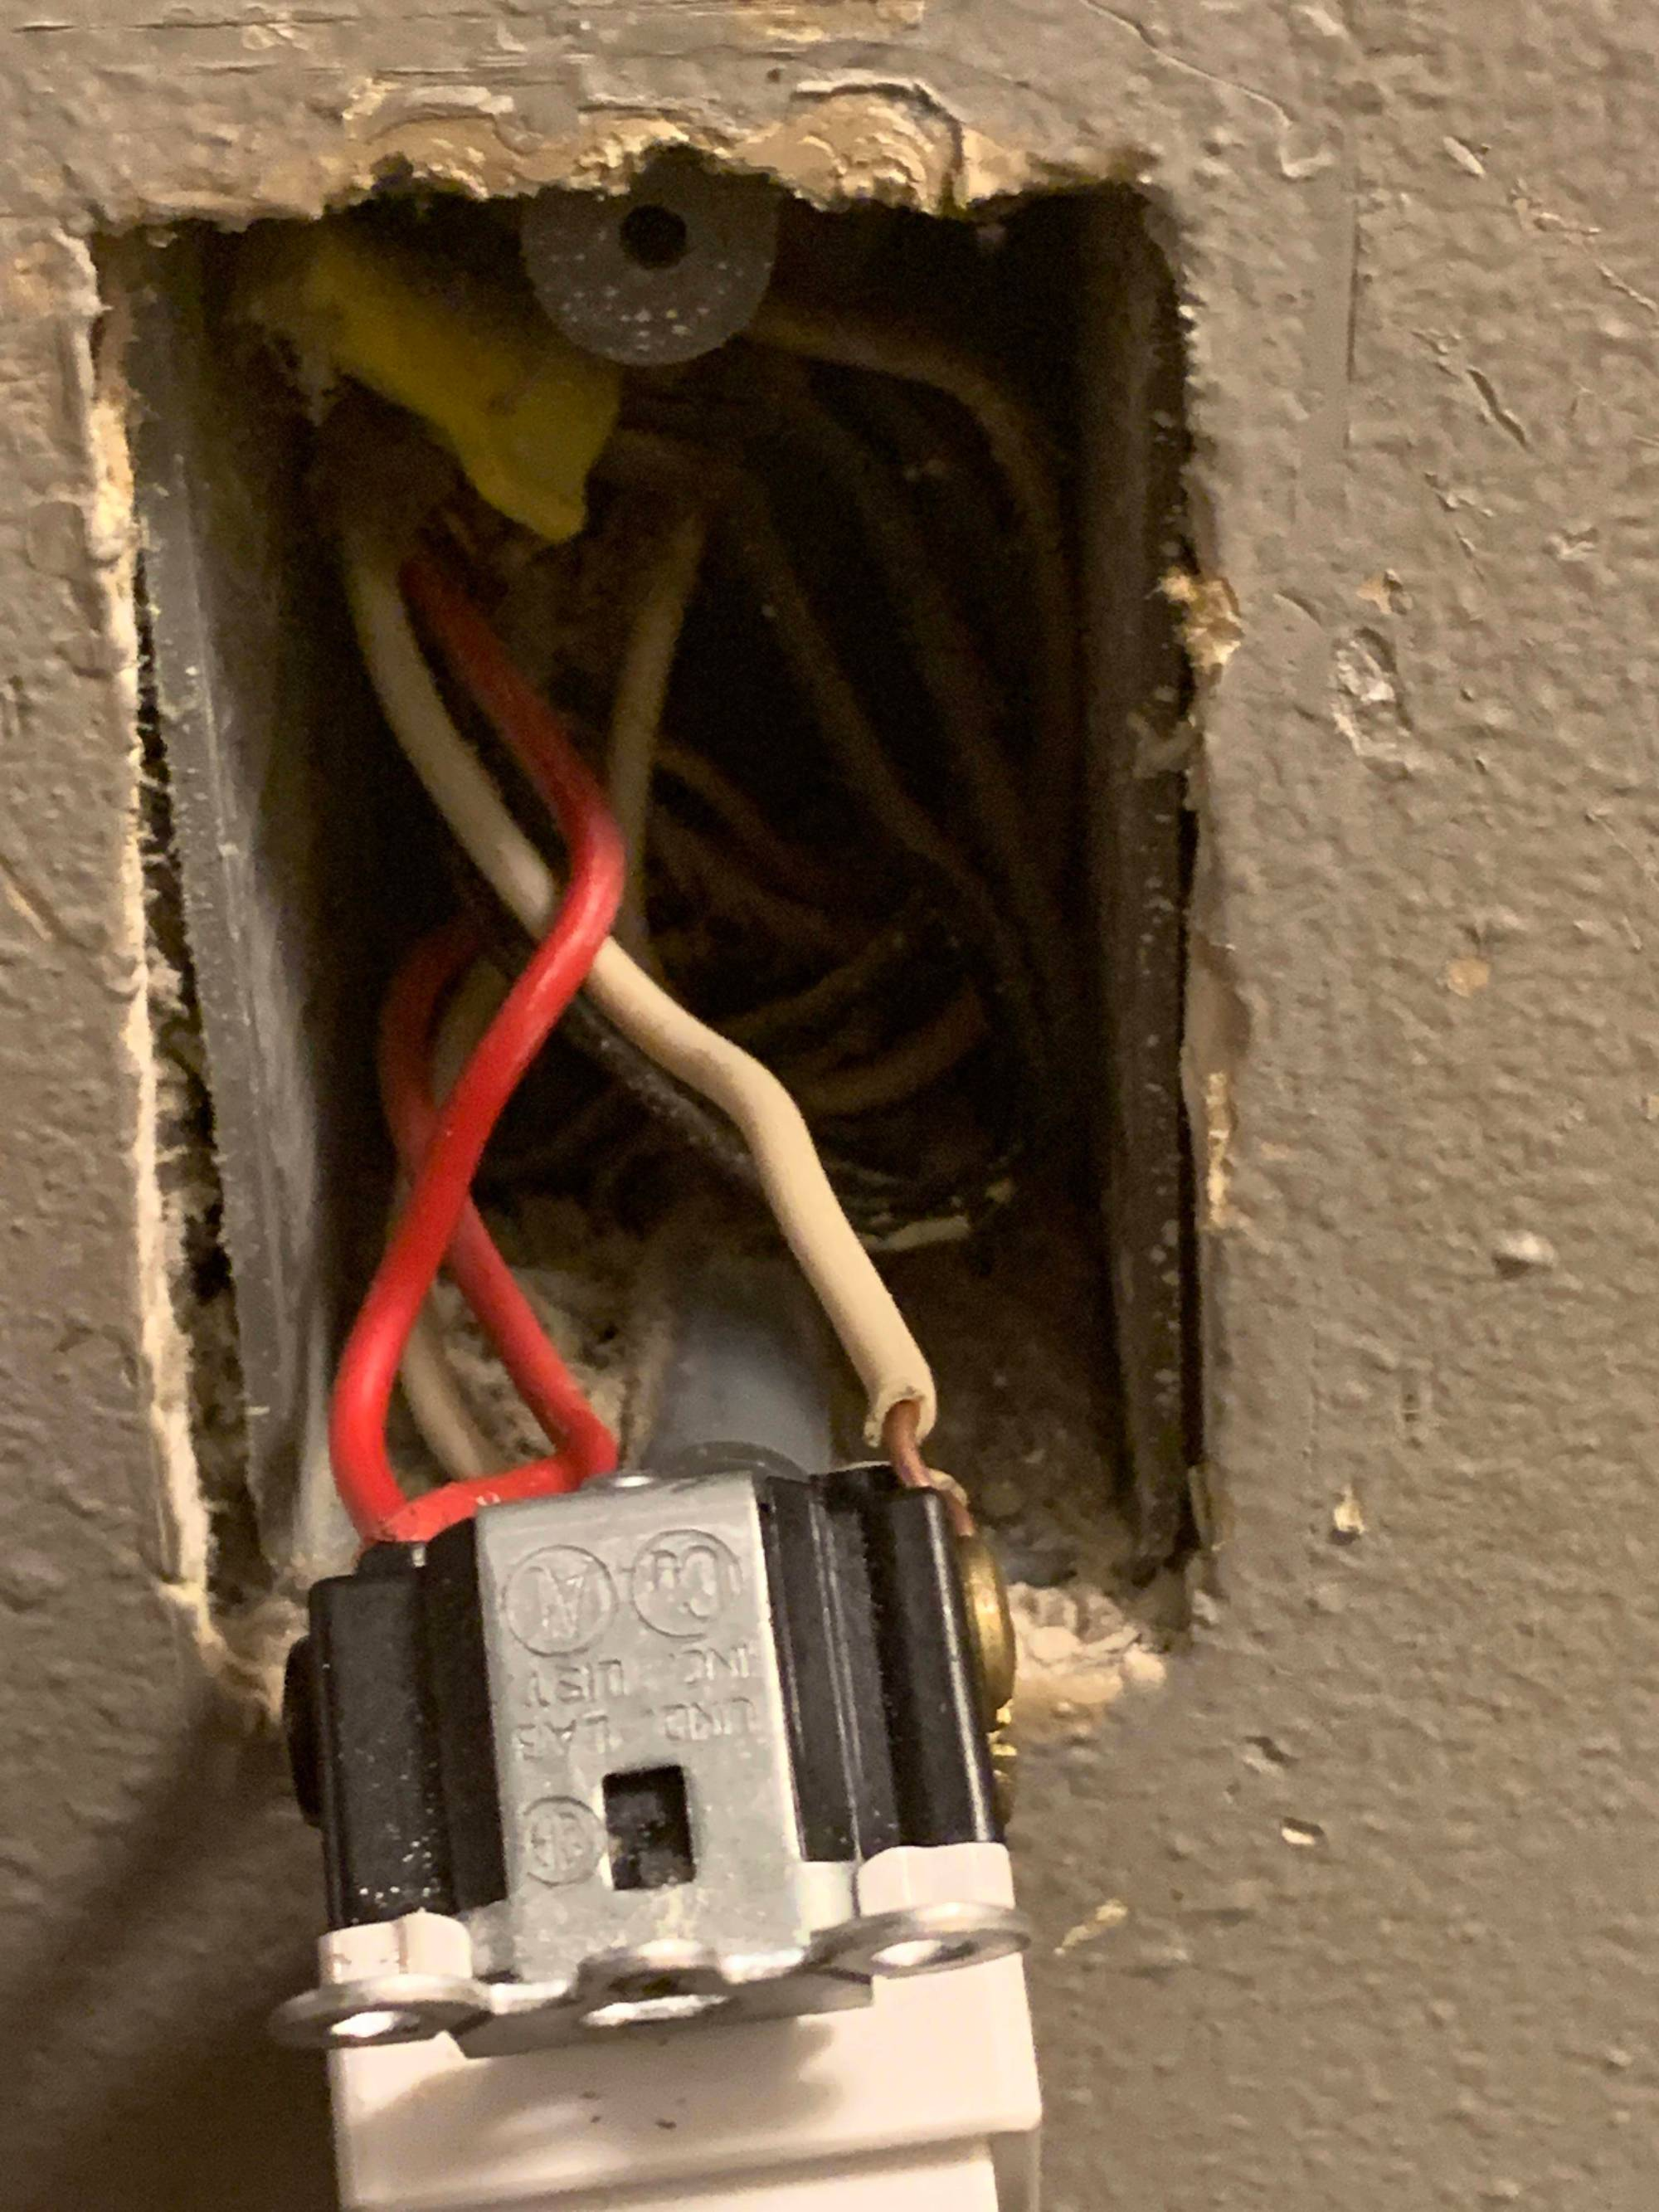 hight resolution of how do i wire my 4 way switch home improvement stack exchange controlled by fourway switch wiring home improvement stack exchange